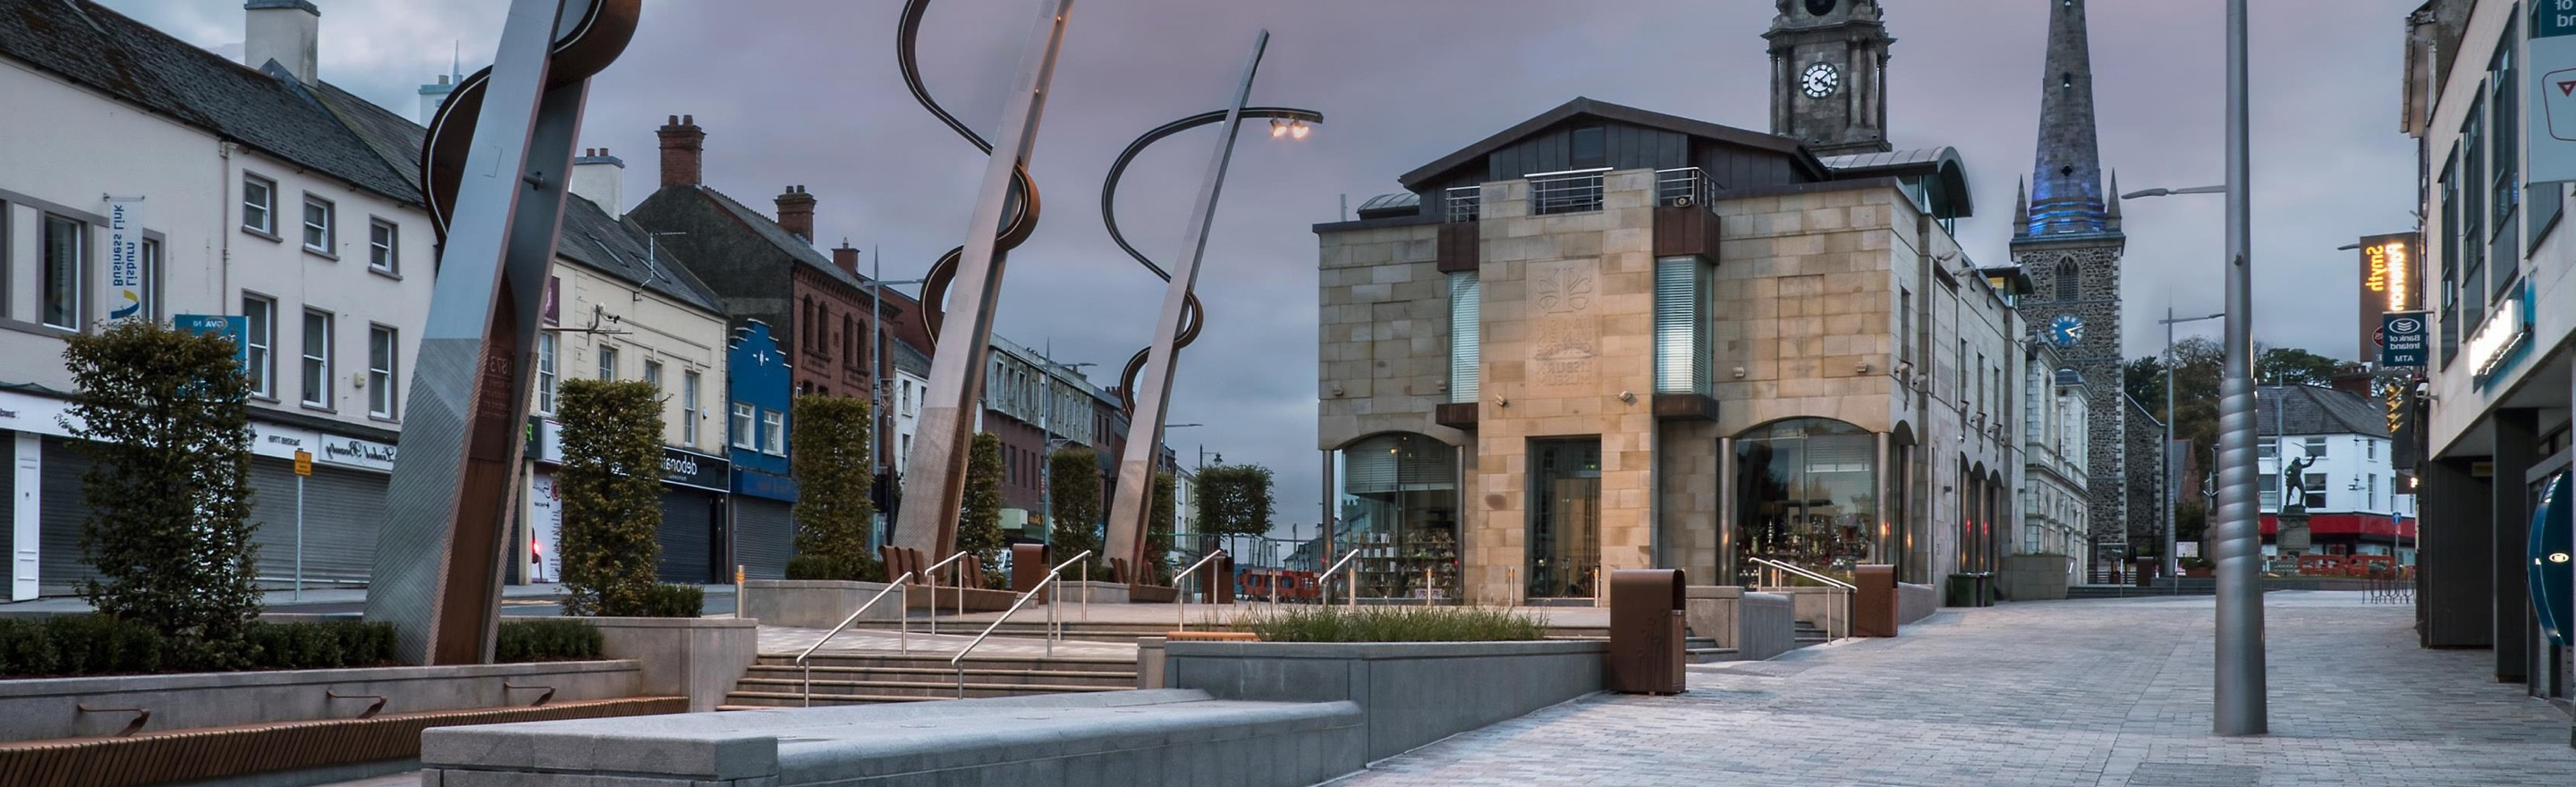 Lisburn Castlereagh City is the best-connected, most business-friendly City in Northern Ireland.